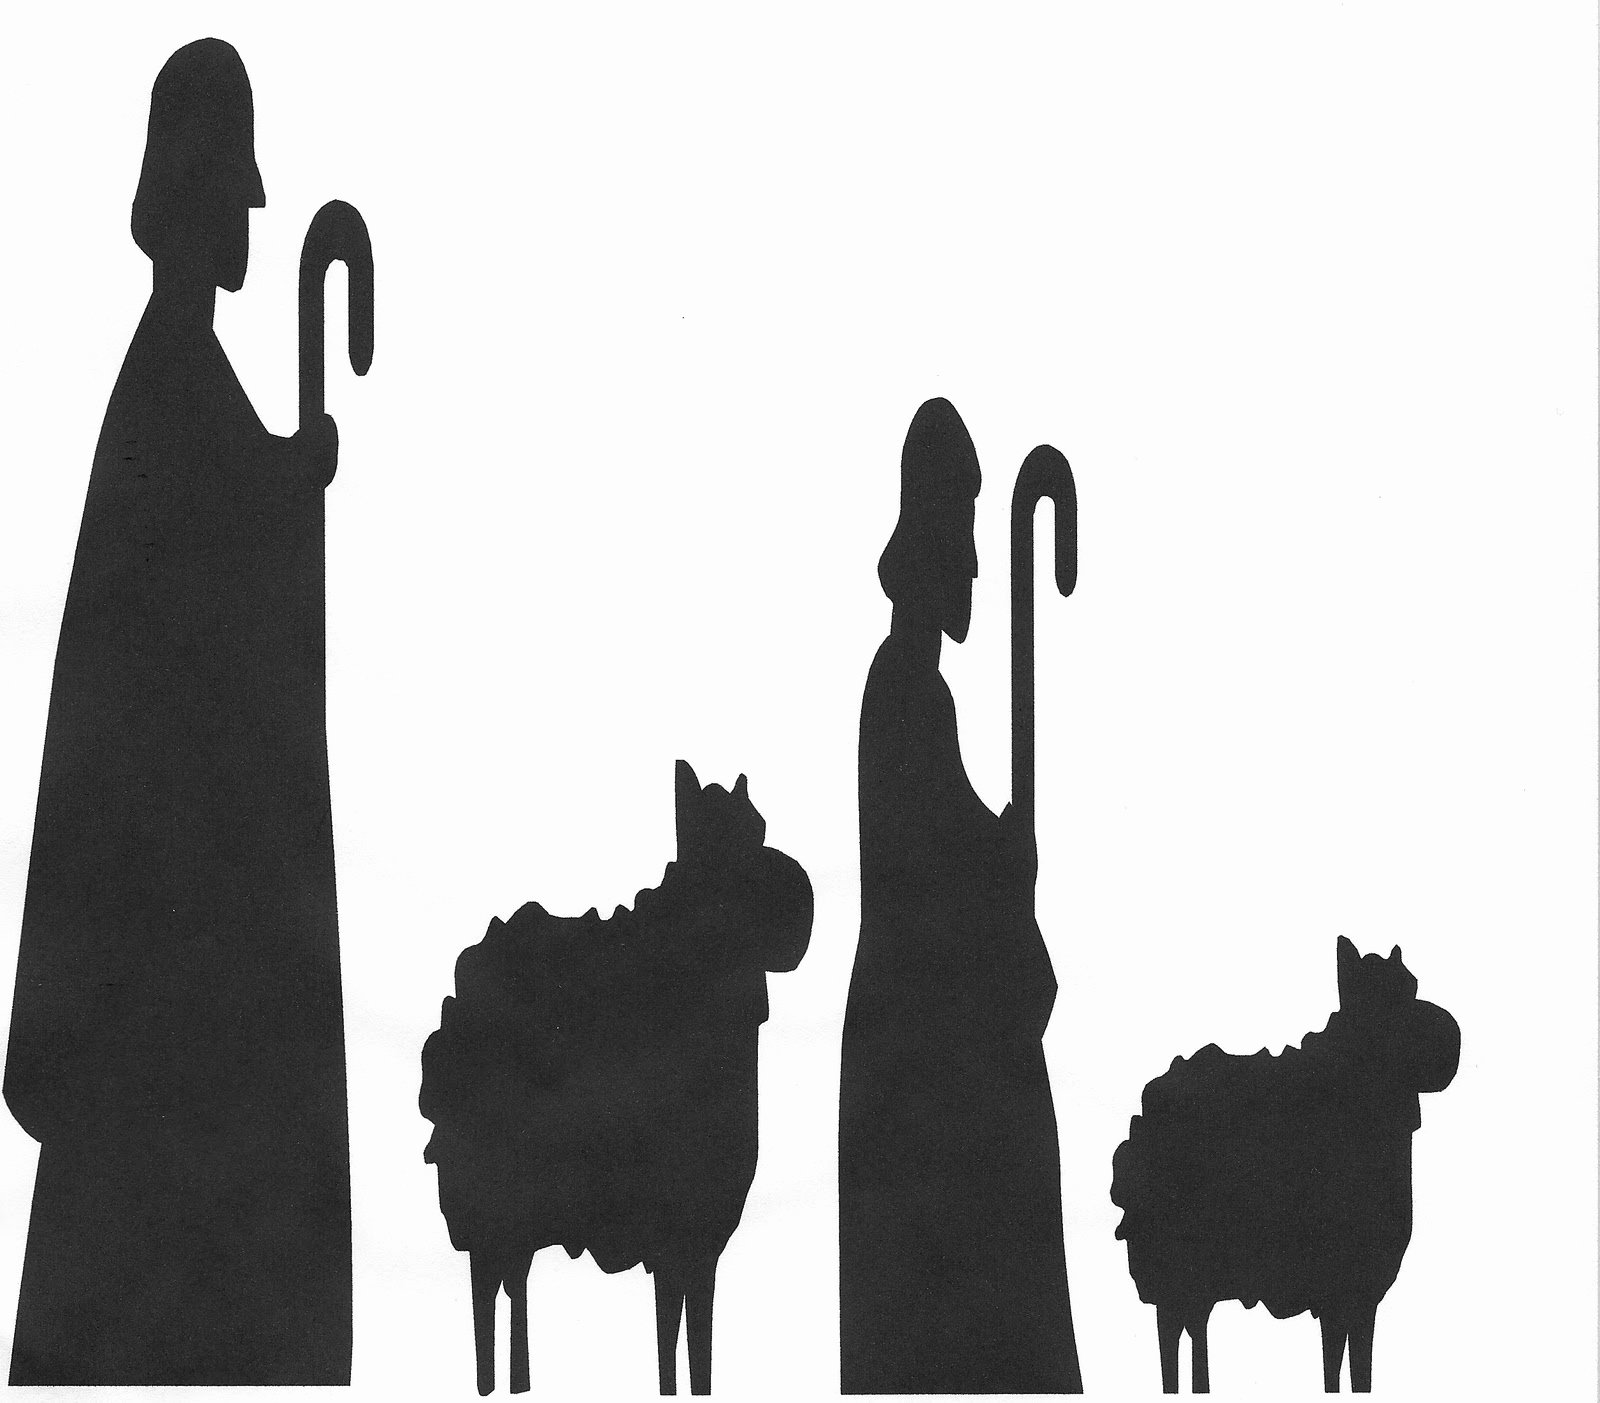 Nativity Scene Silhouette Pattern Free Elegant Nativity Silhouette Patterns Cliparts